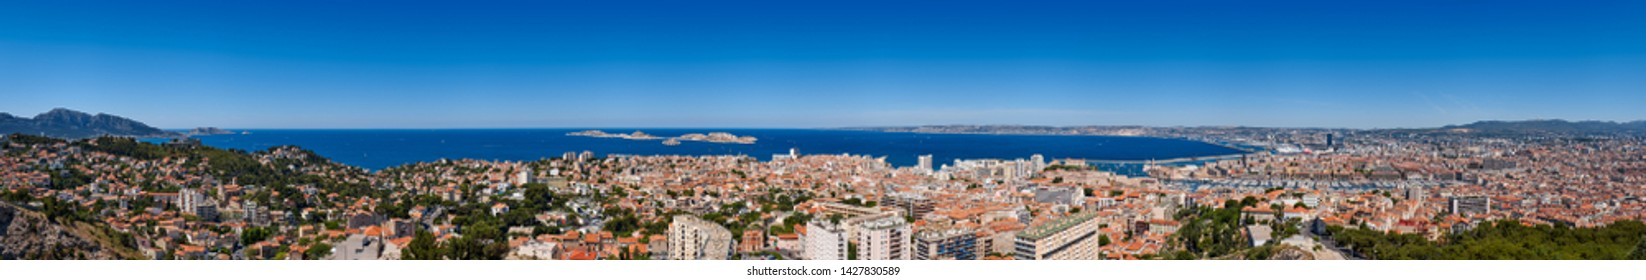 France, Bouches-du-Rhône (13), Marseille harbor. Panoramic summer view including Bompard, Endoume and Vieux Port with the Mediteranean Sea and the Frioul  archipelago. Europe